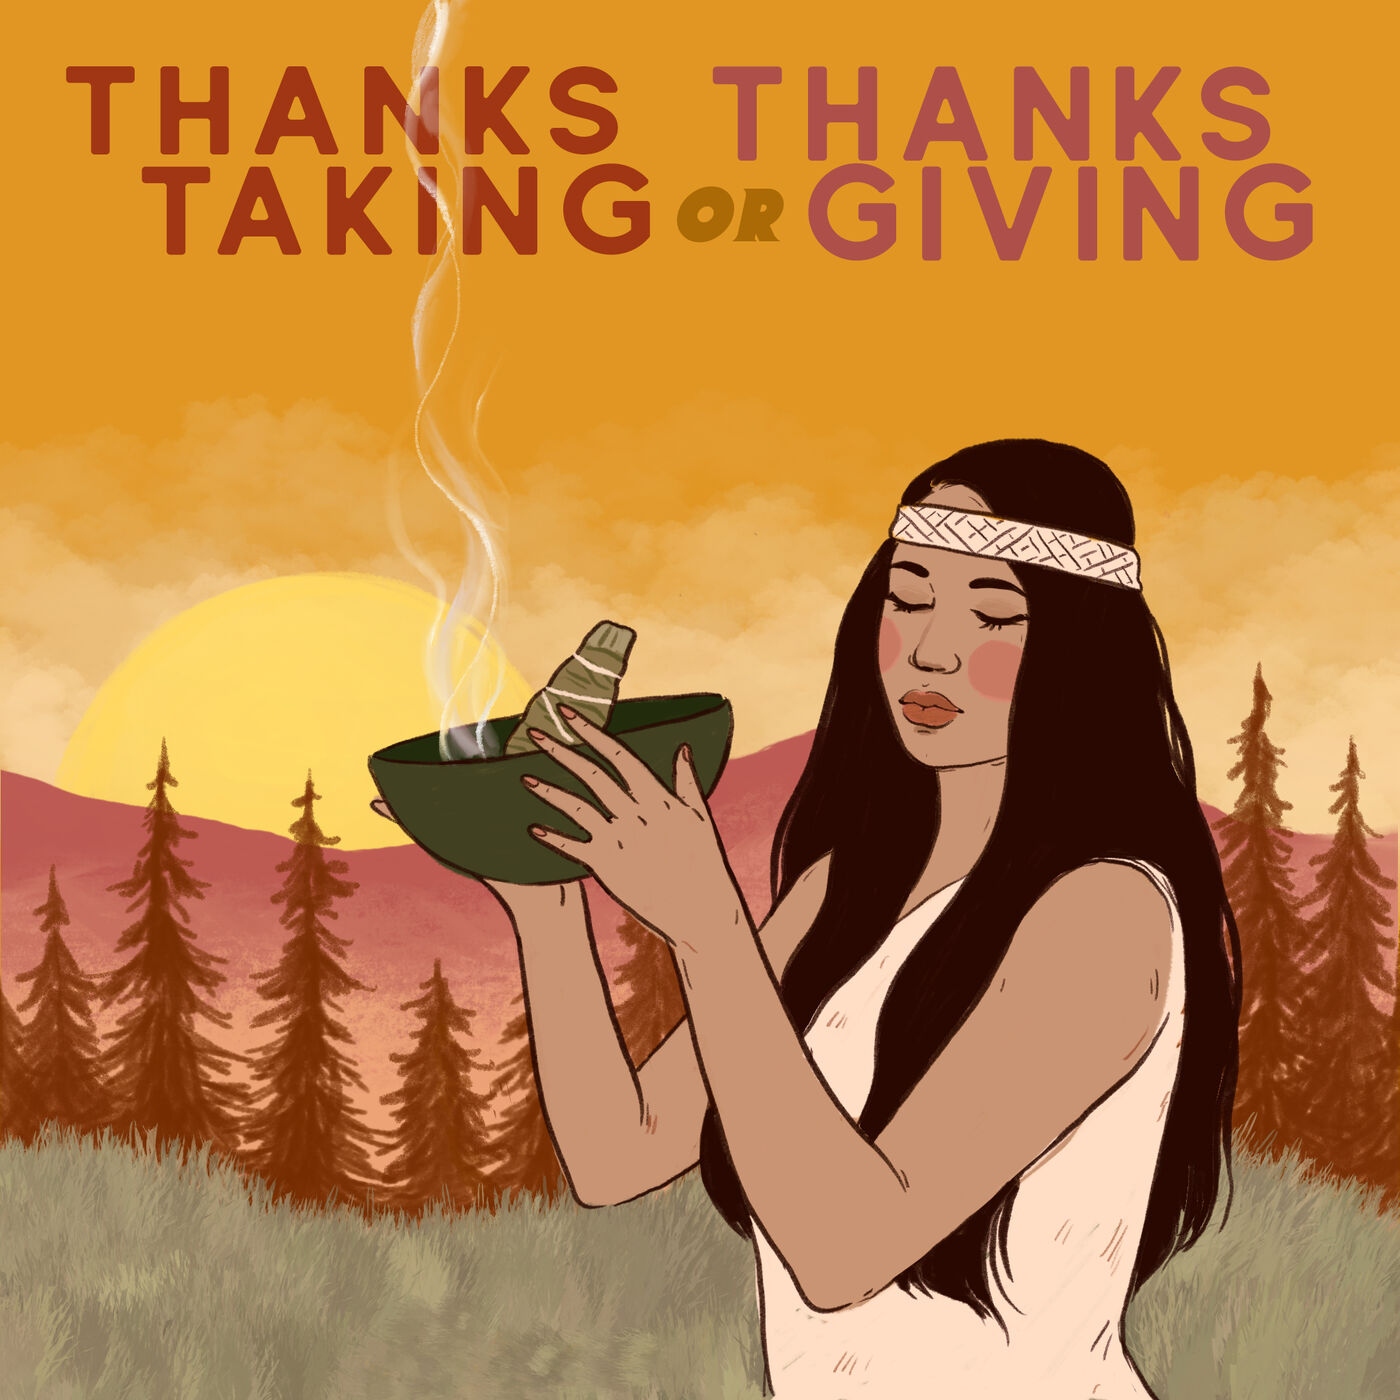 ThanksTaking or ThanksGiving?